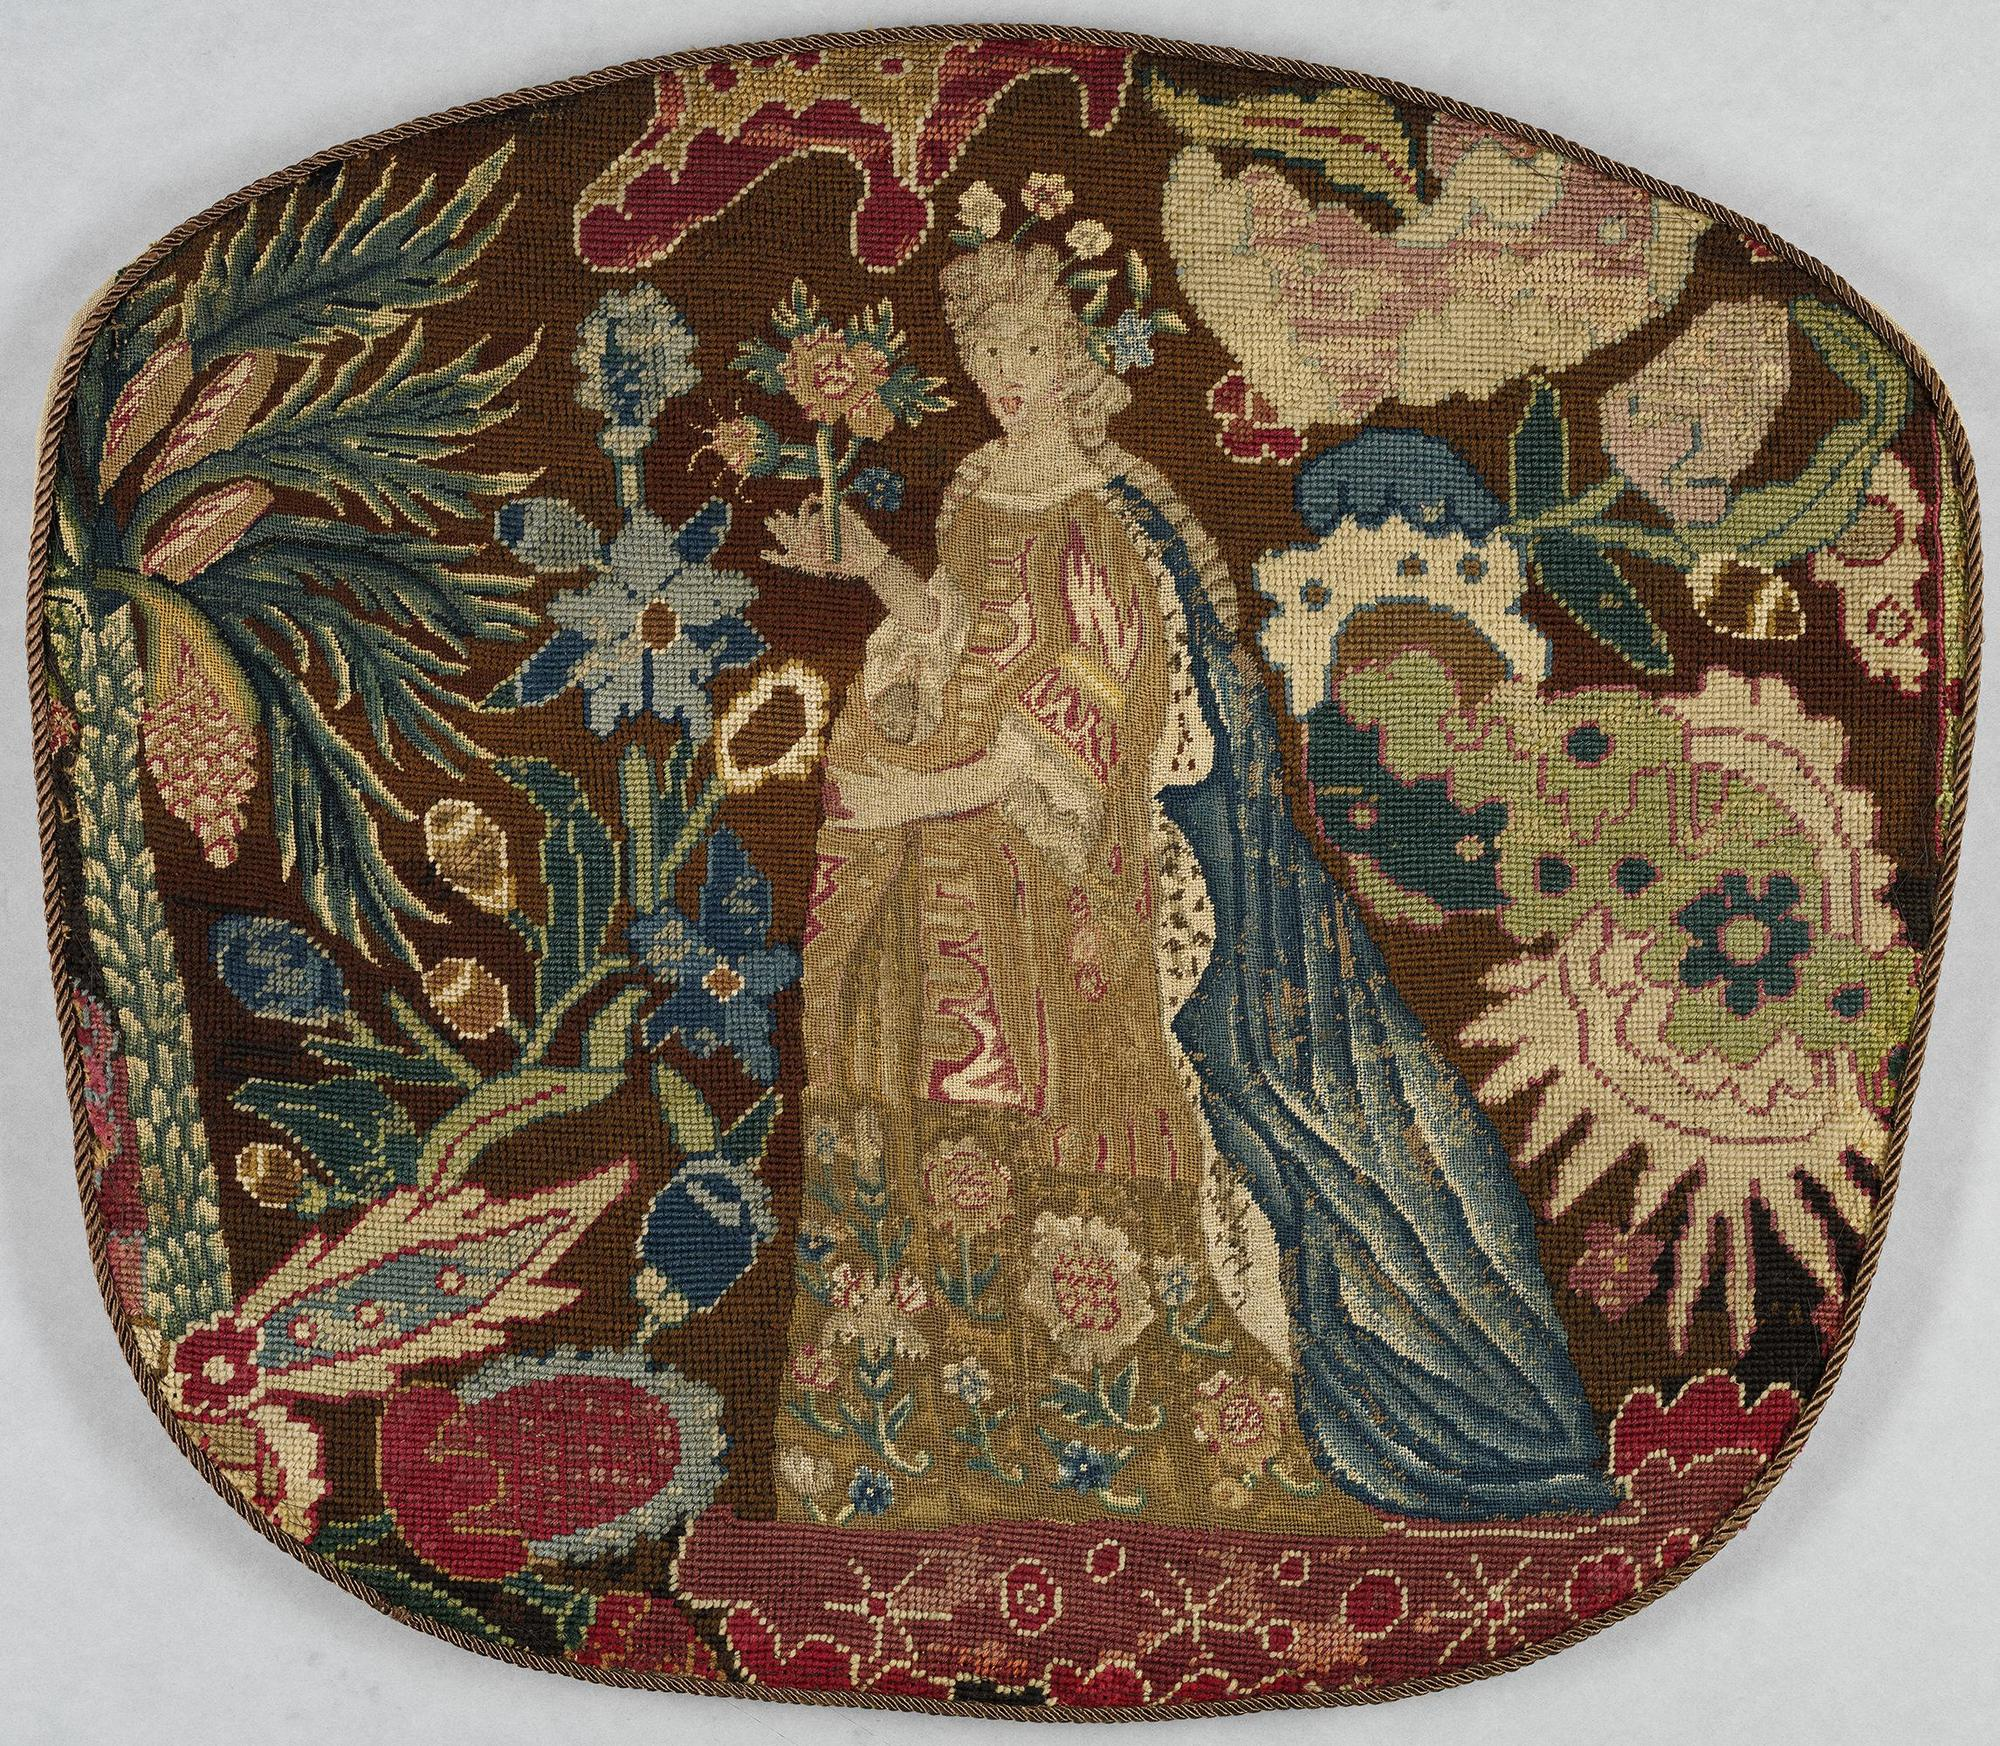 A sewn piece with a woman in a dress surrounded by plants